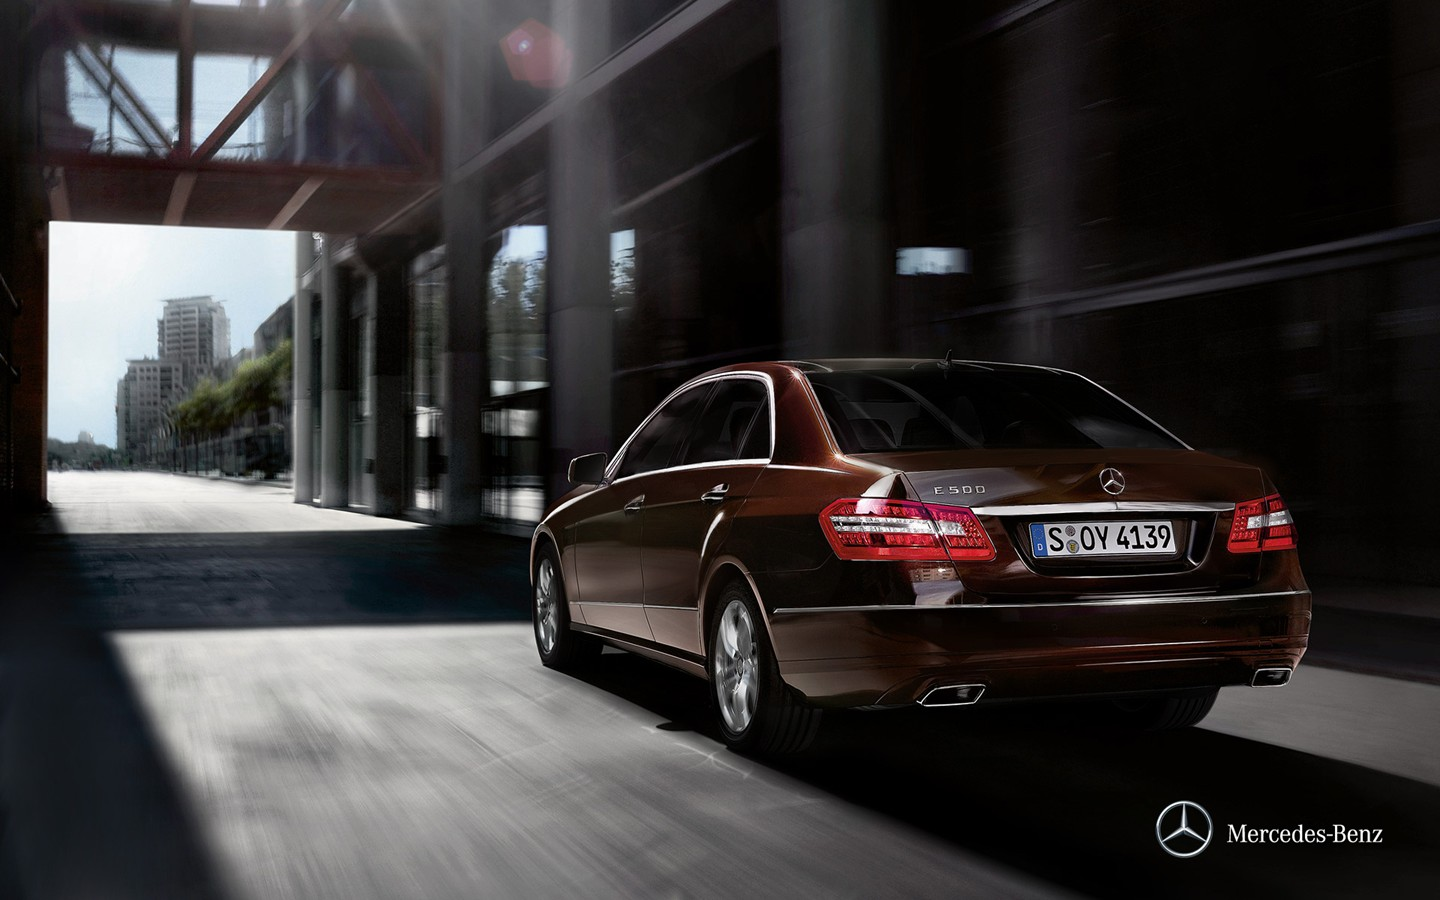 The new Mercedes-Benz E-Class Saloon wallpaper 31878